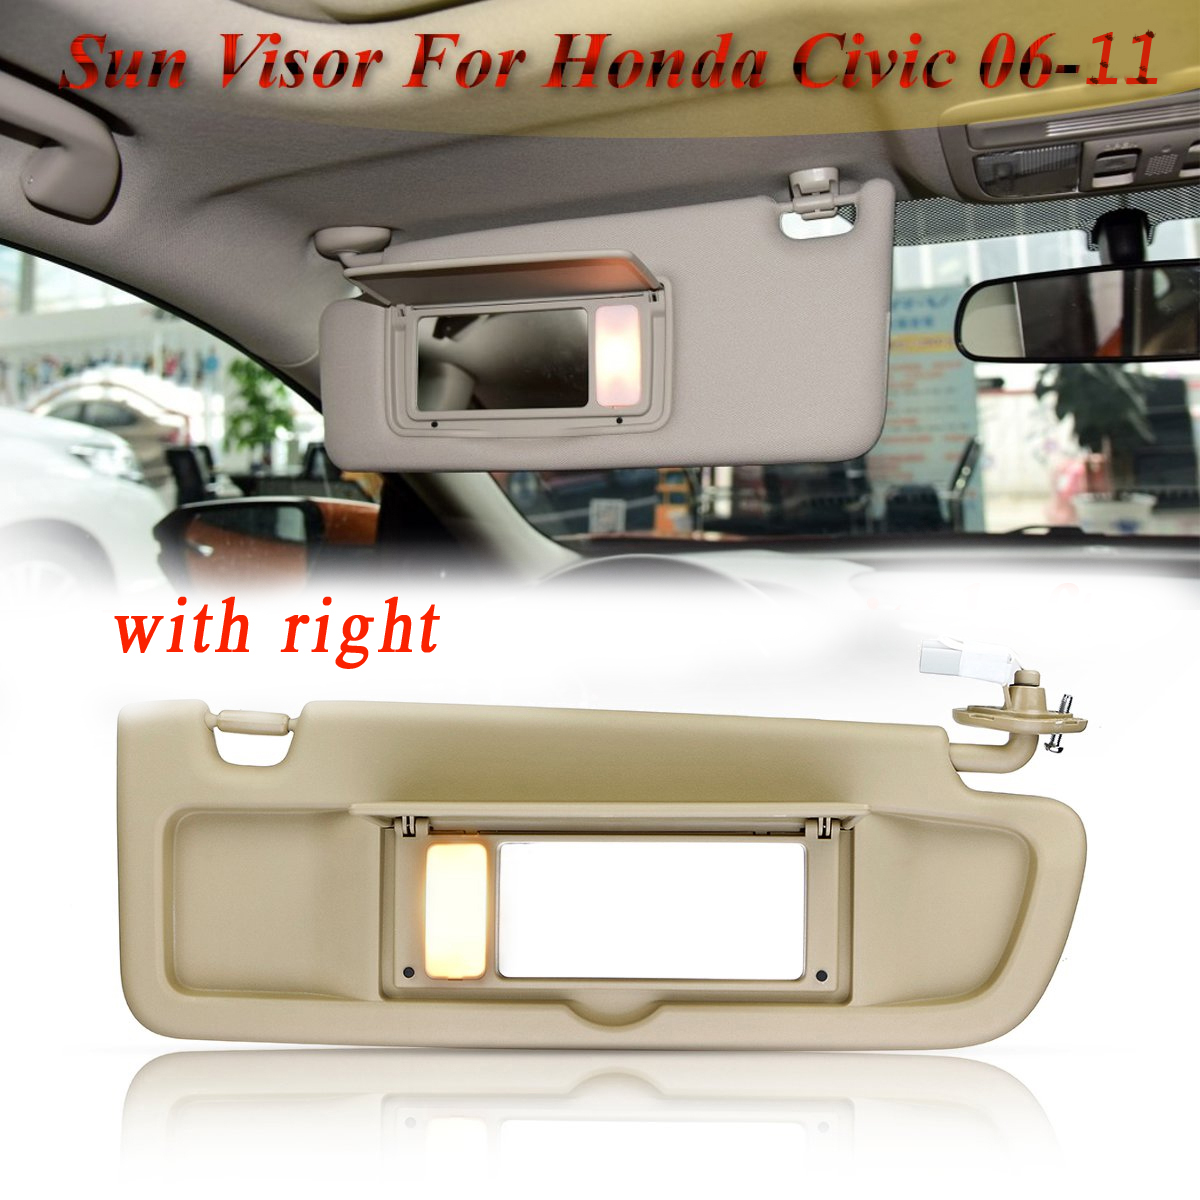 Car Side Sunvisor Sunshade Sun Shield Antidazzle Visor Without Light For <font><b>Honda</b></font> For <font><b>Civic</b></font> For Coupe Sedan 2006 <font><b>2007</b></font> 2008 2009-11 image